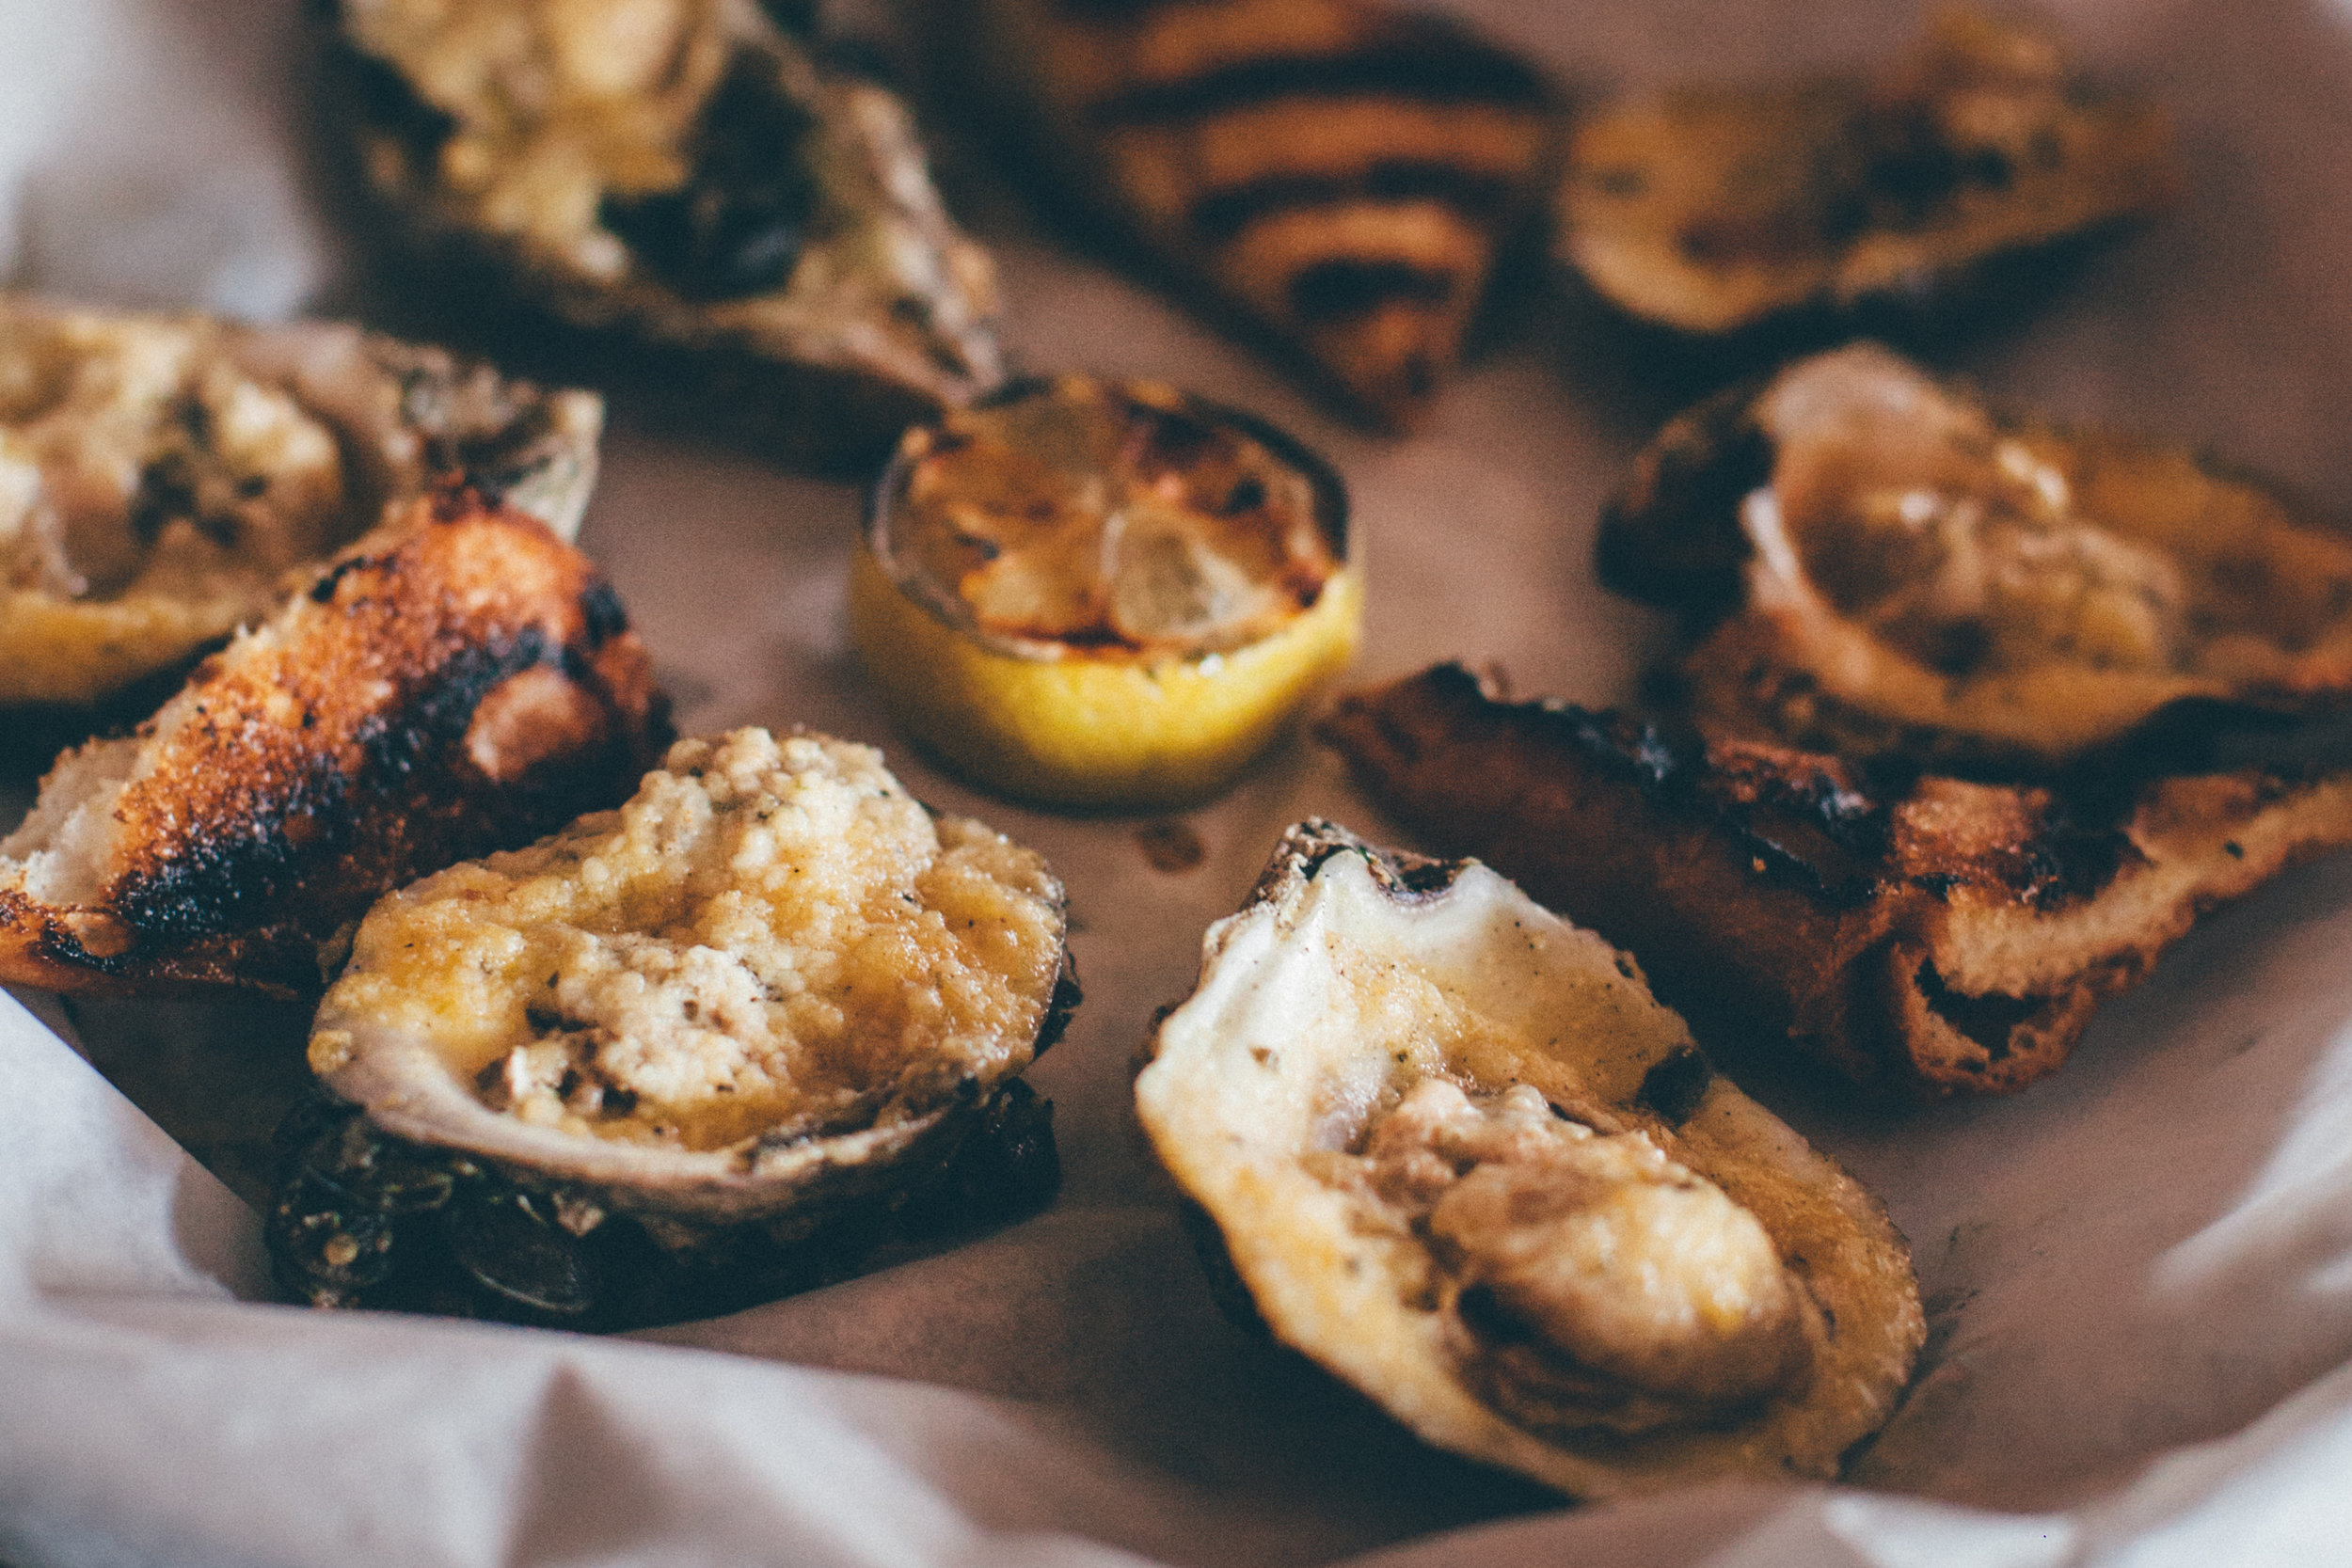 Char-grilled oysters, topped with Romano and Parmesan cheese and Roux compound butter.